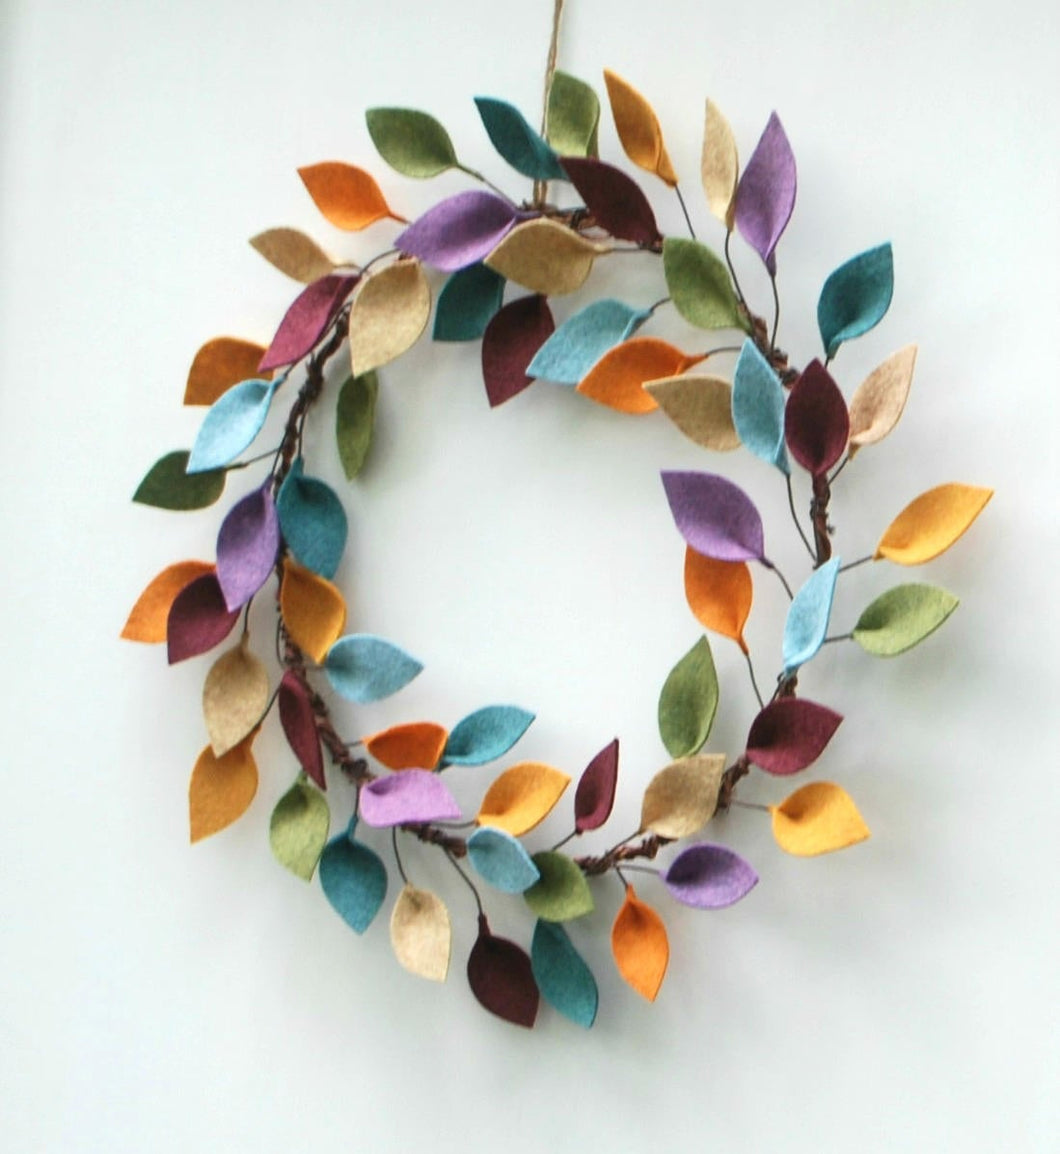 Small Felt Leaf Wreath - Simple Wreath for Fall - Modern Everyday Wreath - 12